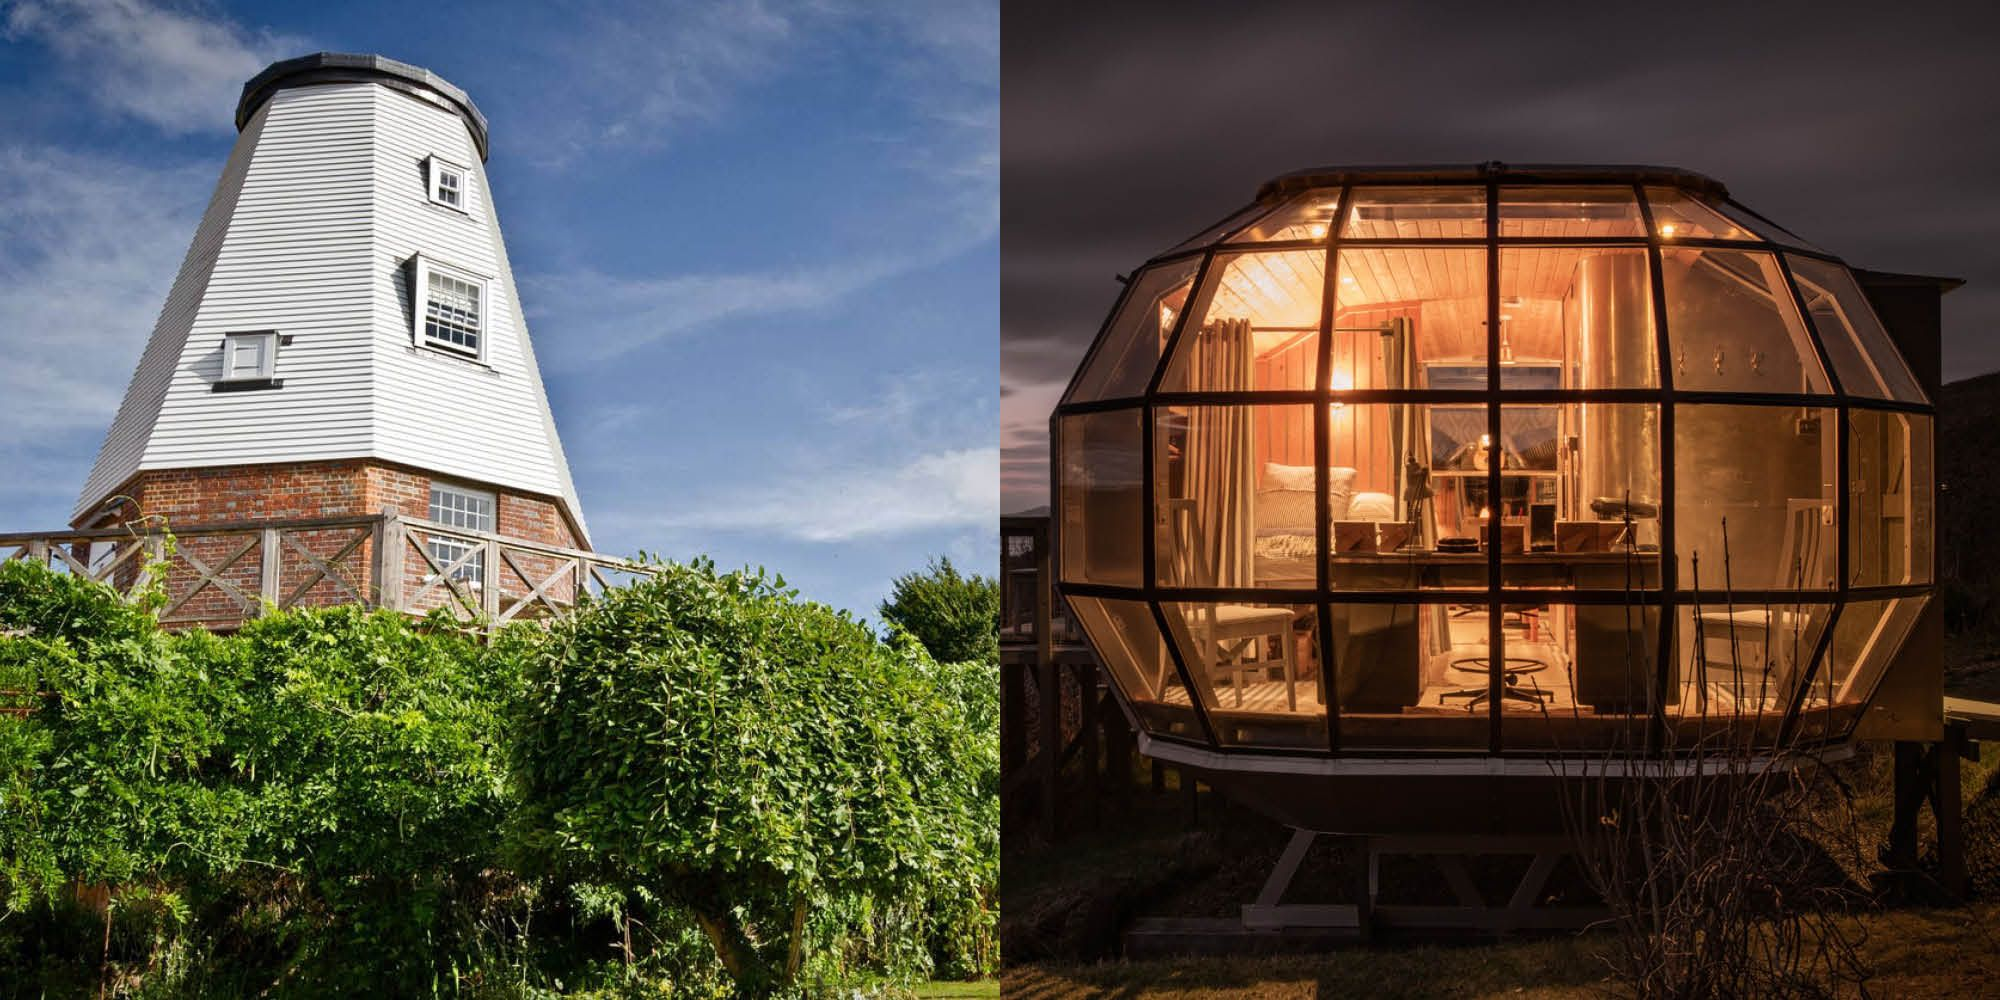 Best Airbnb Holiday Properties In The Uk Amazing Airbnbs